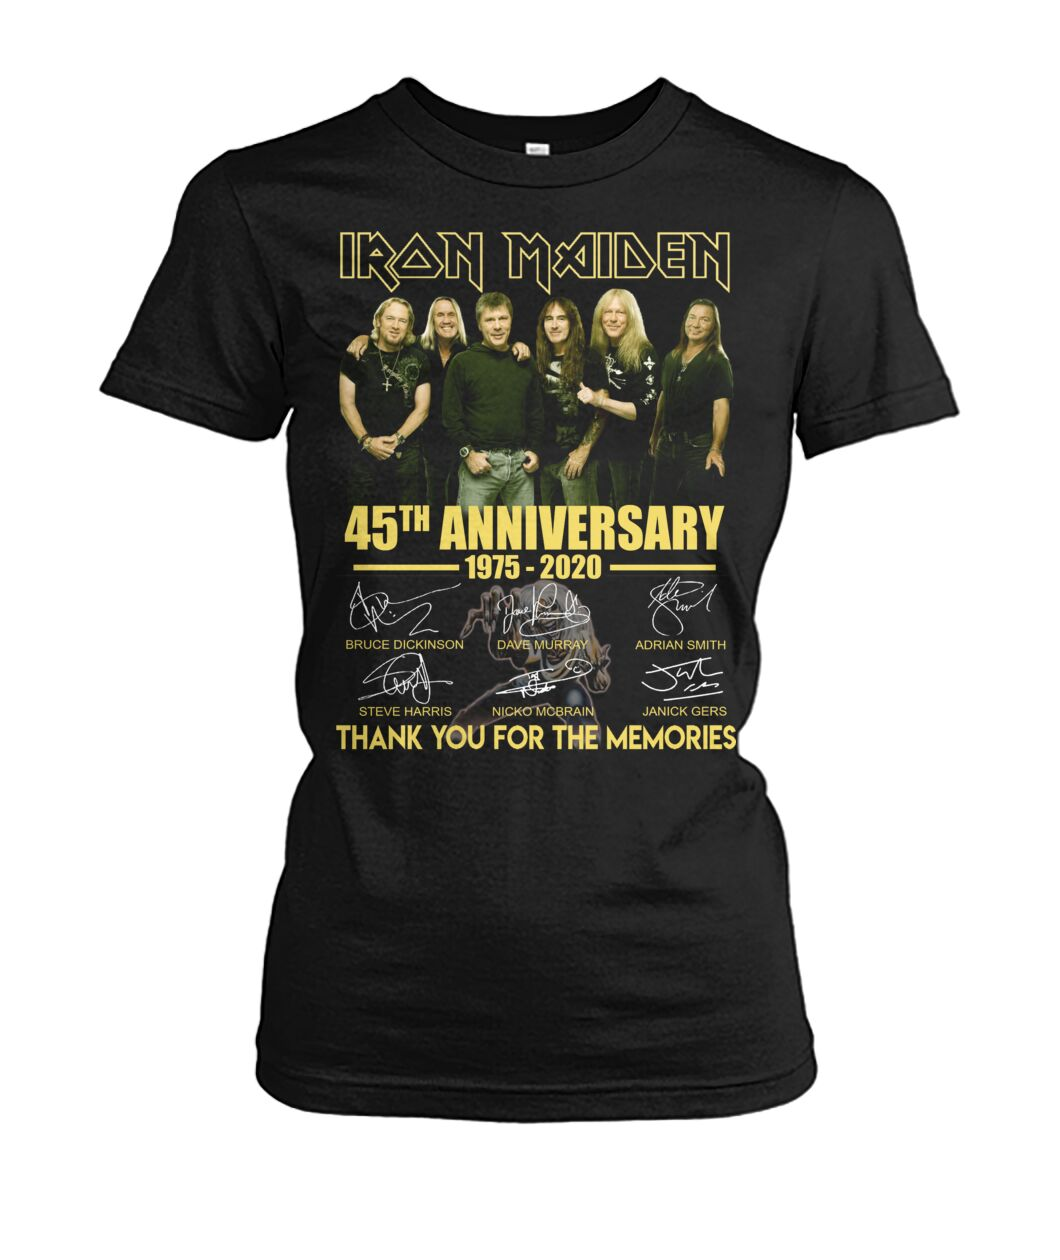 Iron maiden 45th anniversary thank you for the memories